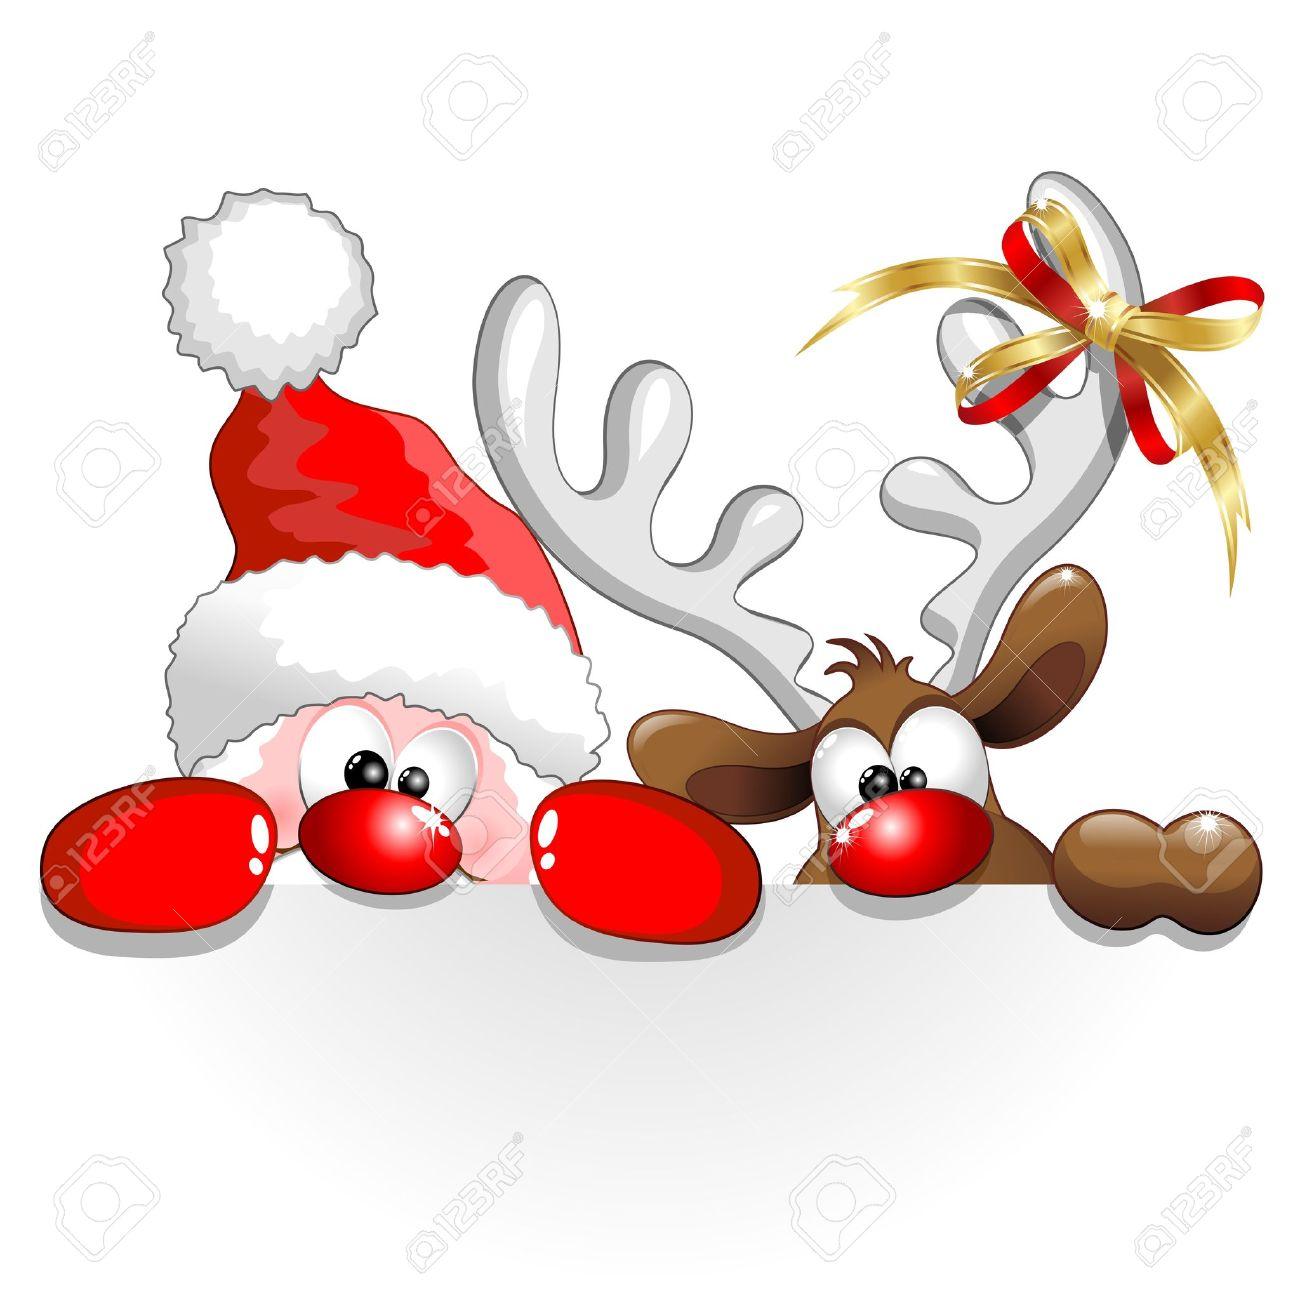 funny christmas santa and reindeer cartoon royalty free cliparts vectors and stock illustration image 22281236 funny christmas santa and reindeer cartoon